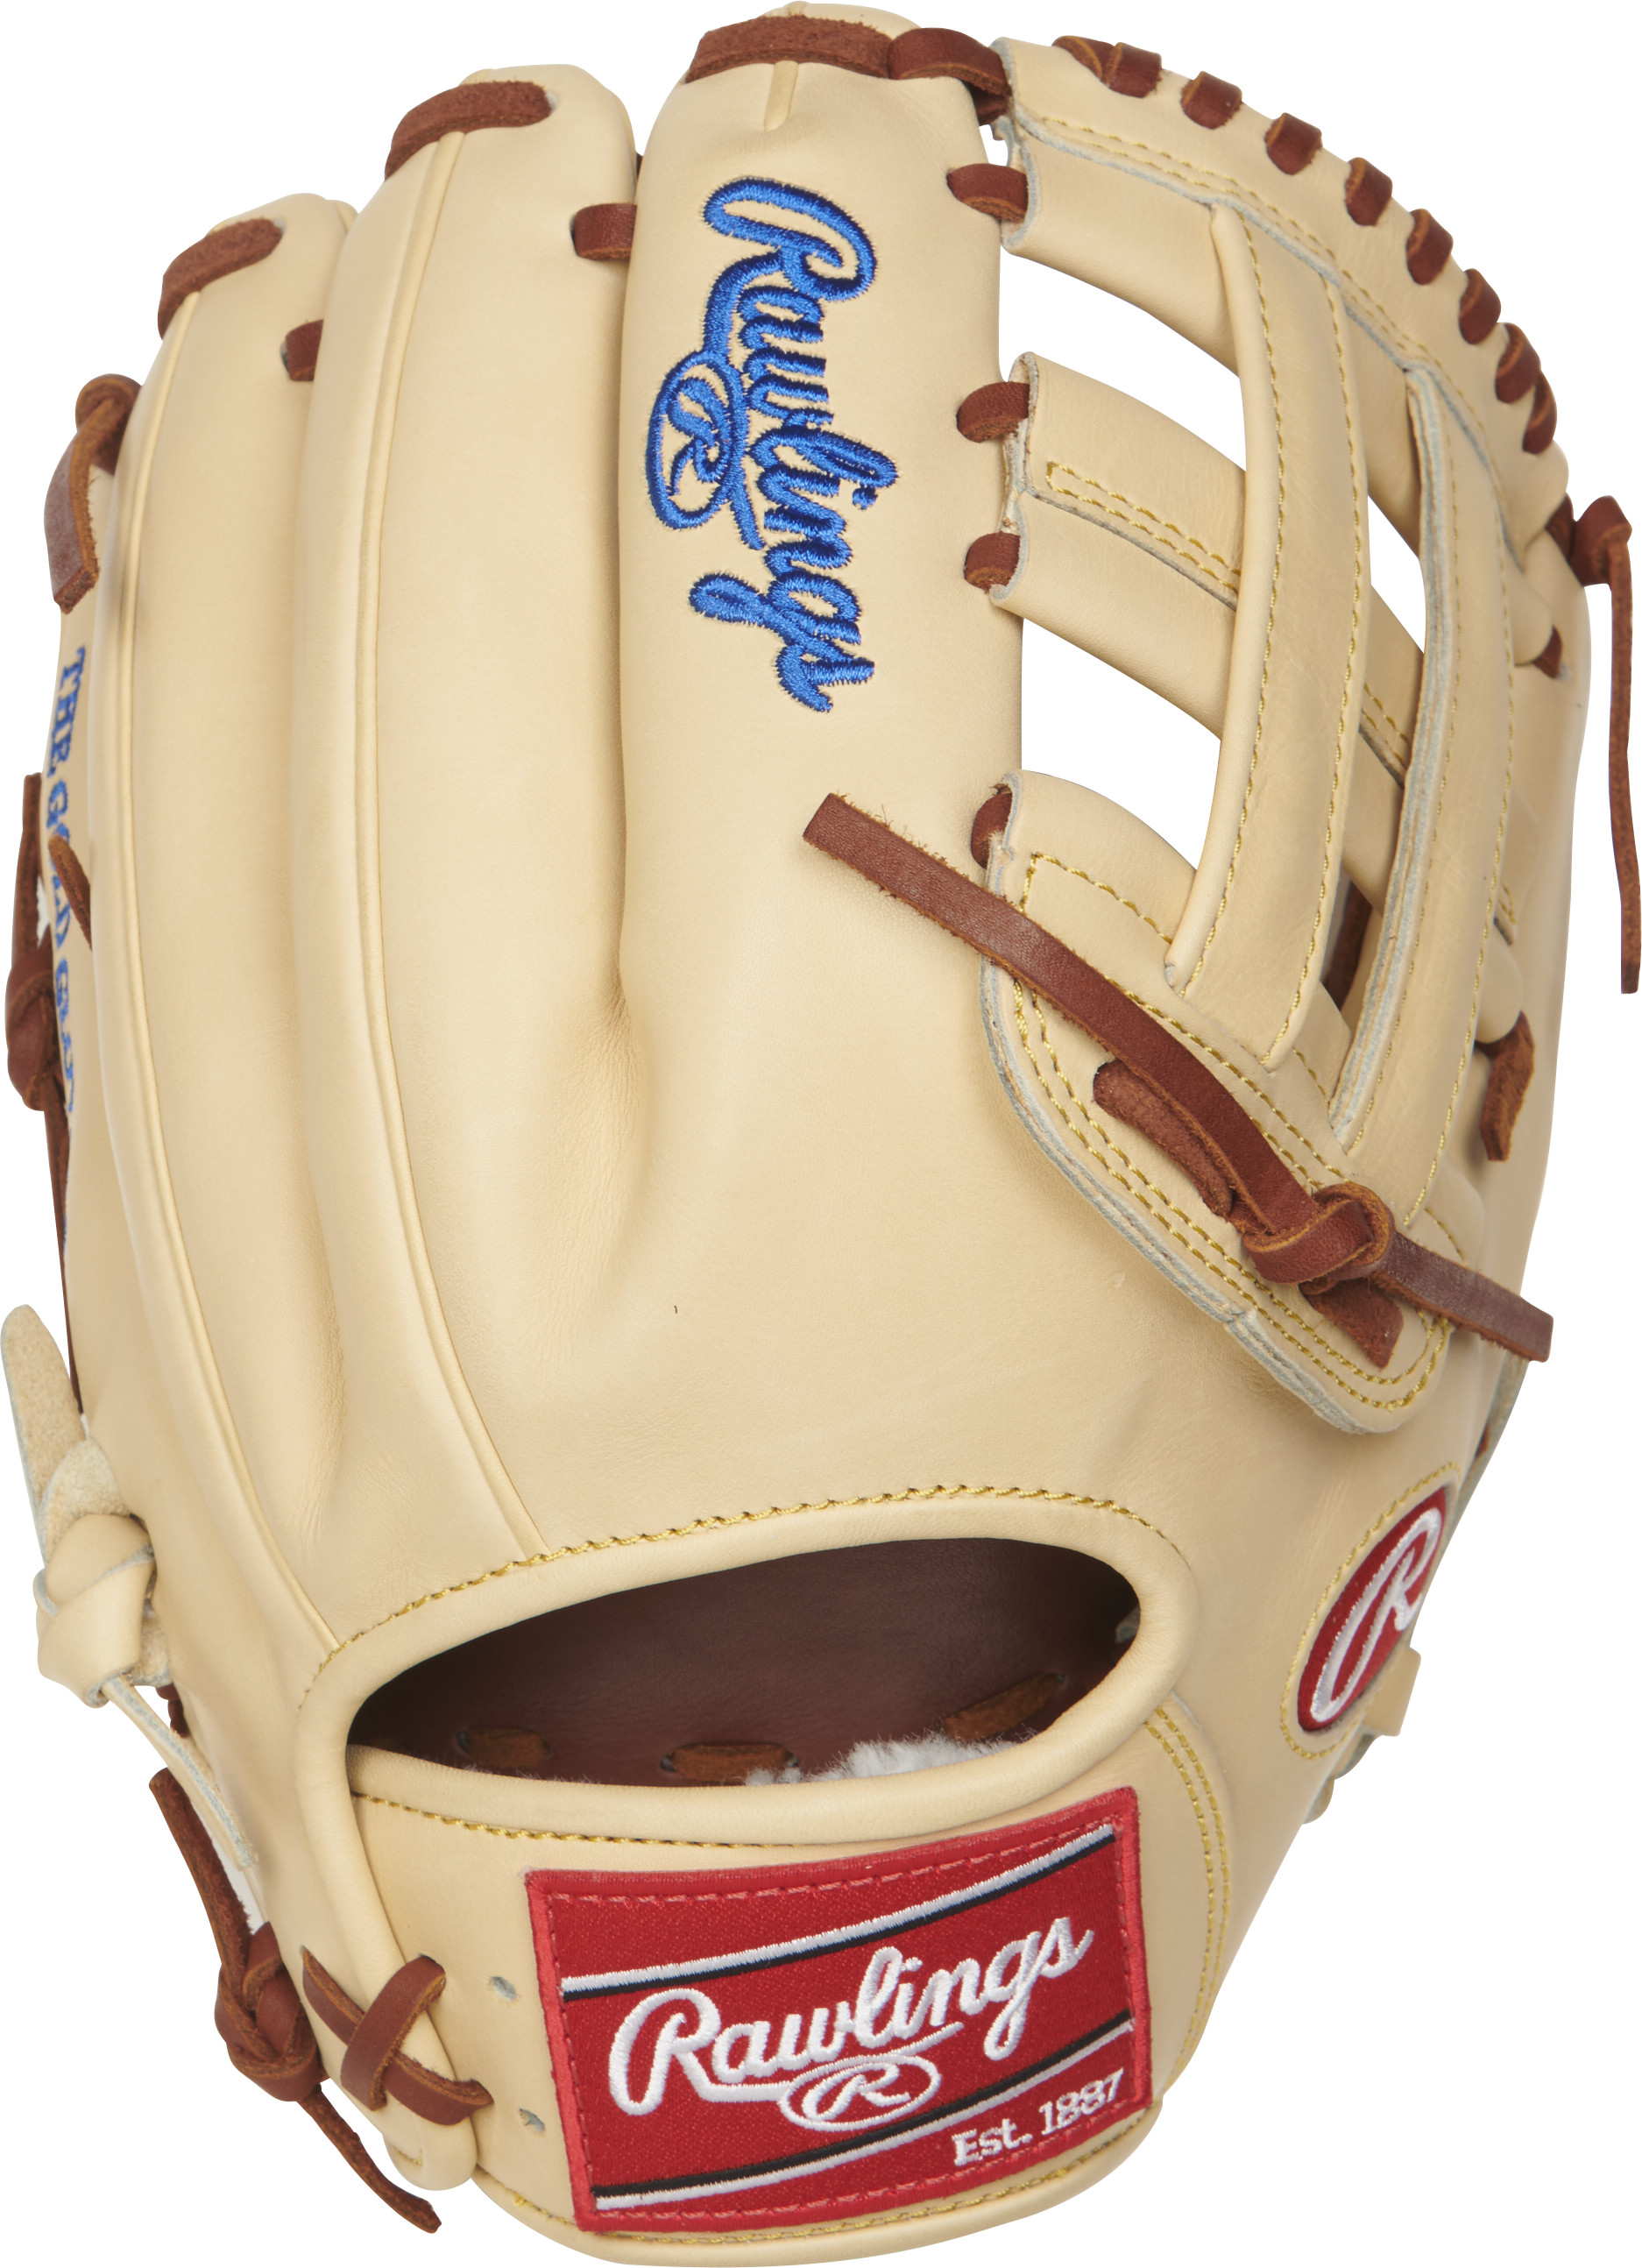 http://www.bestbatdeals.com/images/gloves/rawlings/PROSKB17-2.jpg